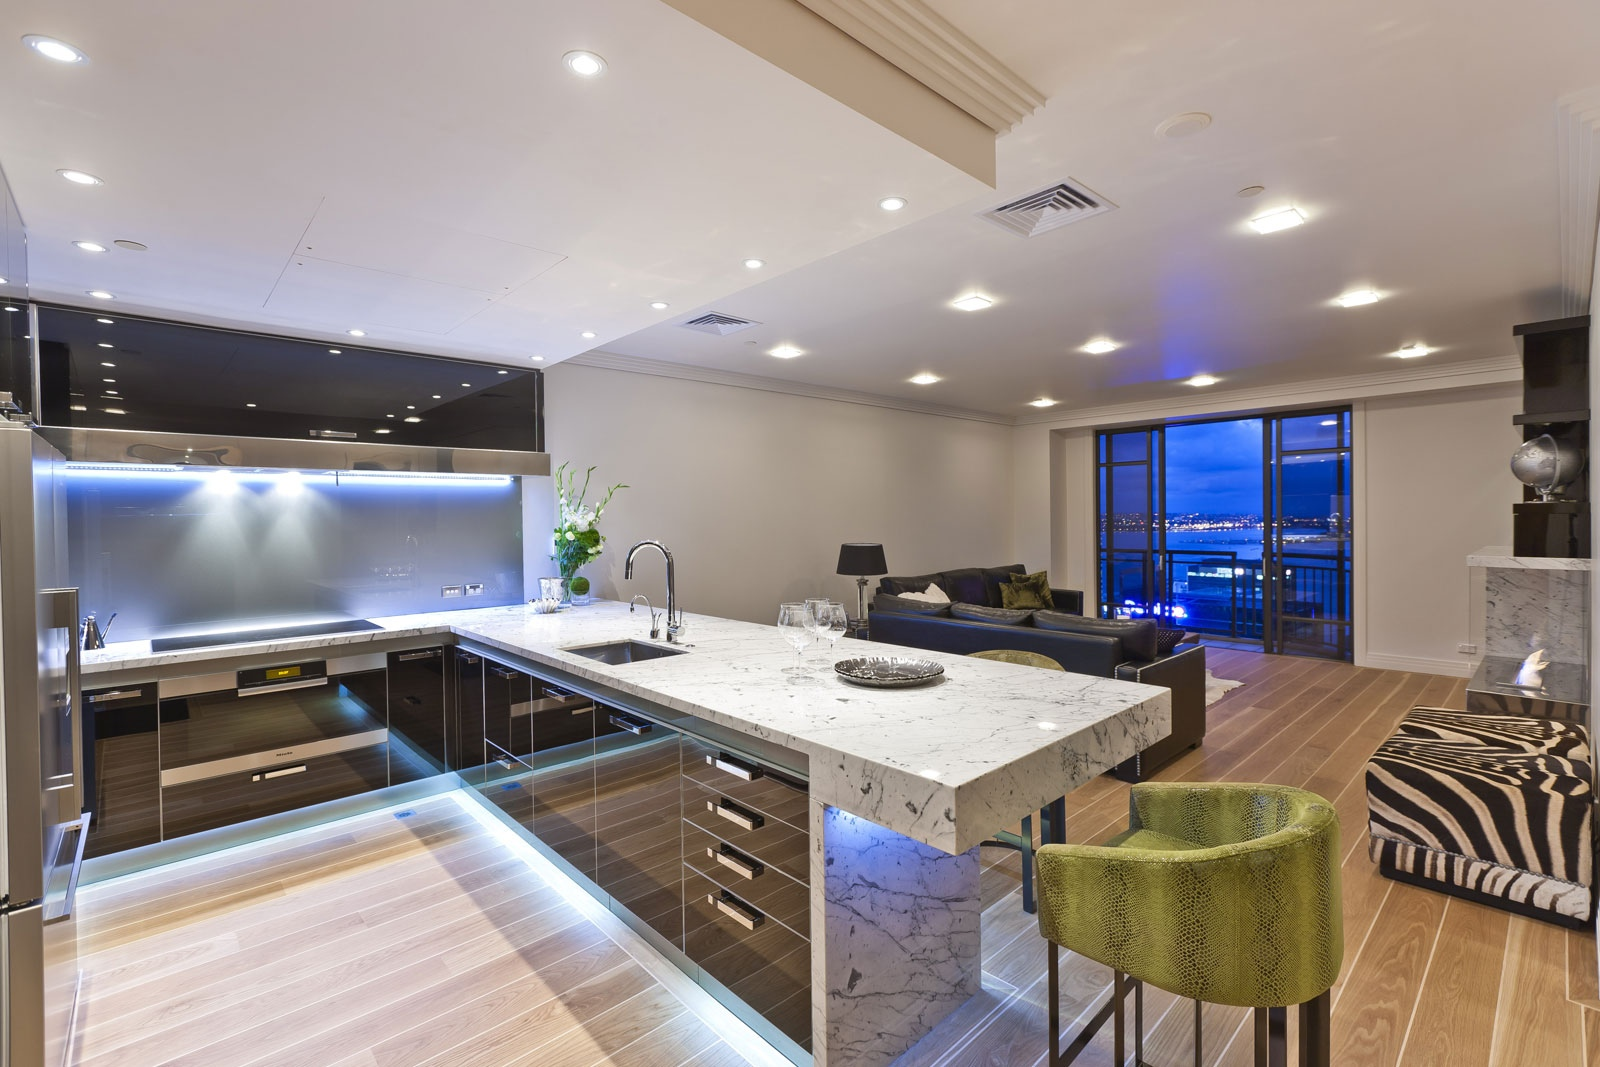 17 light filled modern kitchens by mal corboy contemporary kitchen lighting